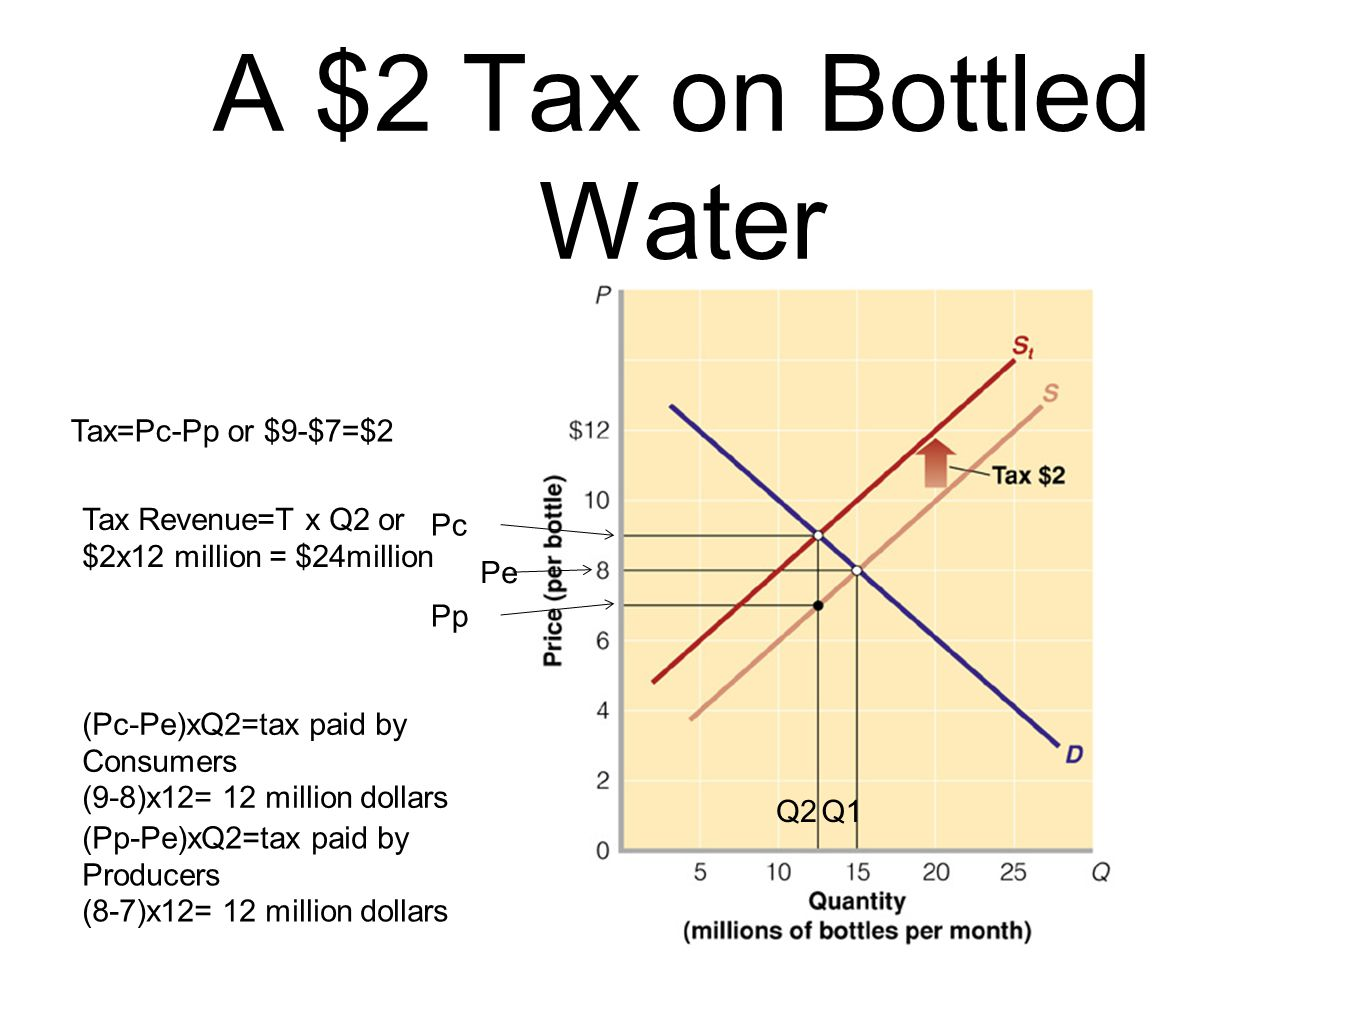 A $2 Tax on Bottled Water Tax=Pc-Pp or $9-$7=$2 Tax Revenue=T x Q2 or